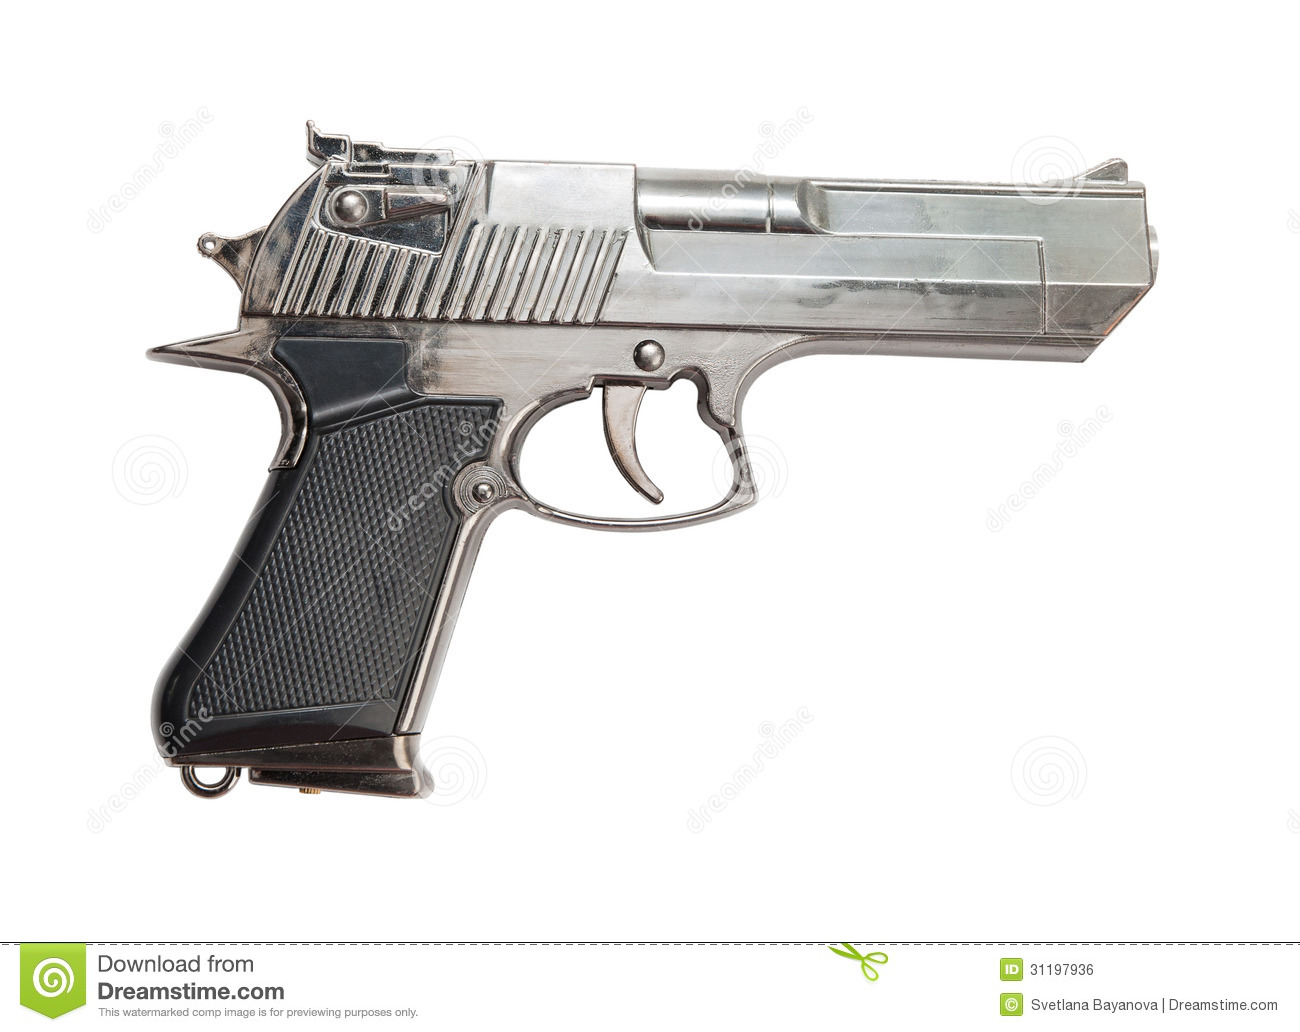 gun white background - photo #13